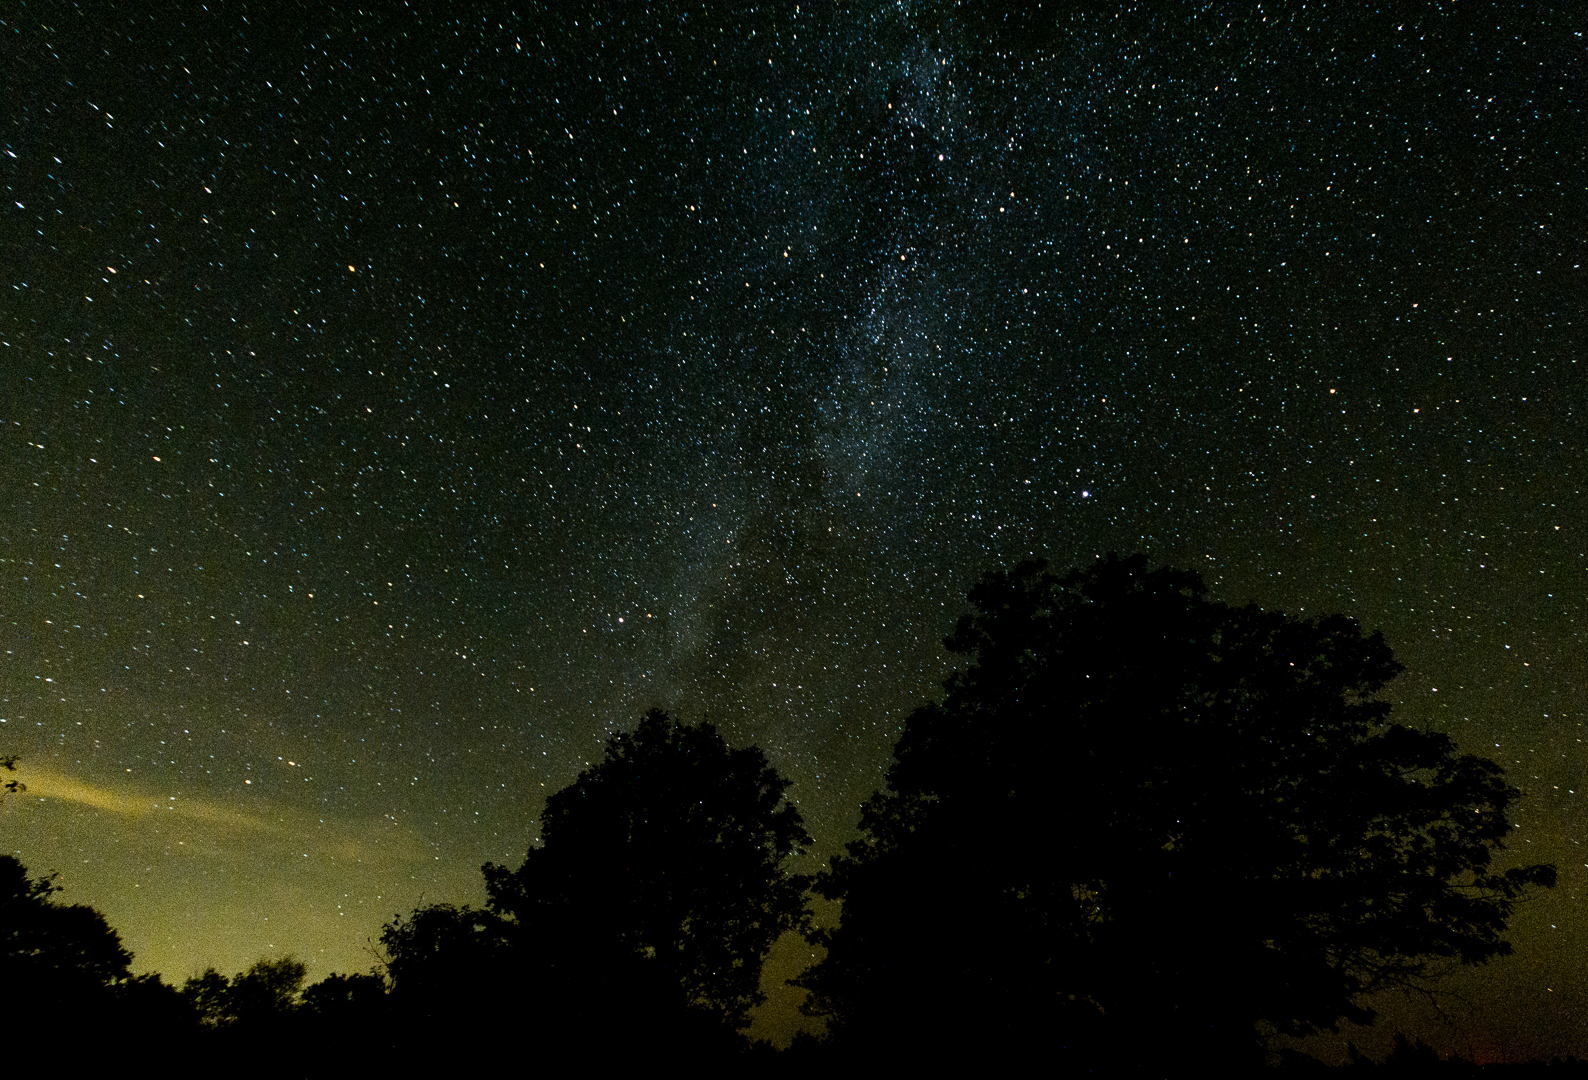 Night Sky at Torrance Barrens